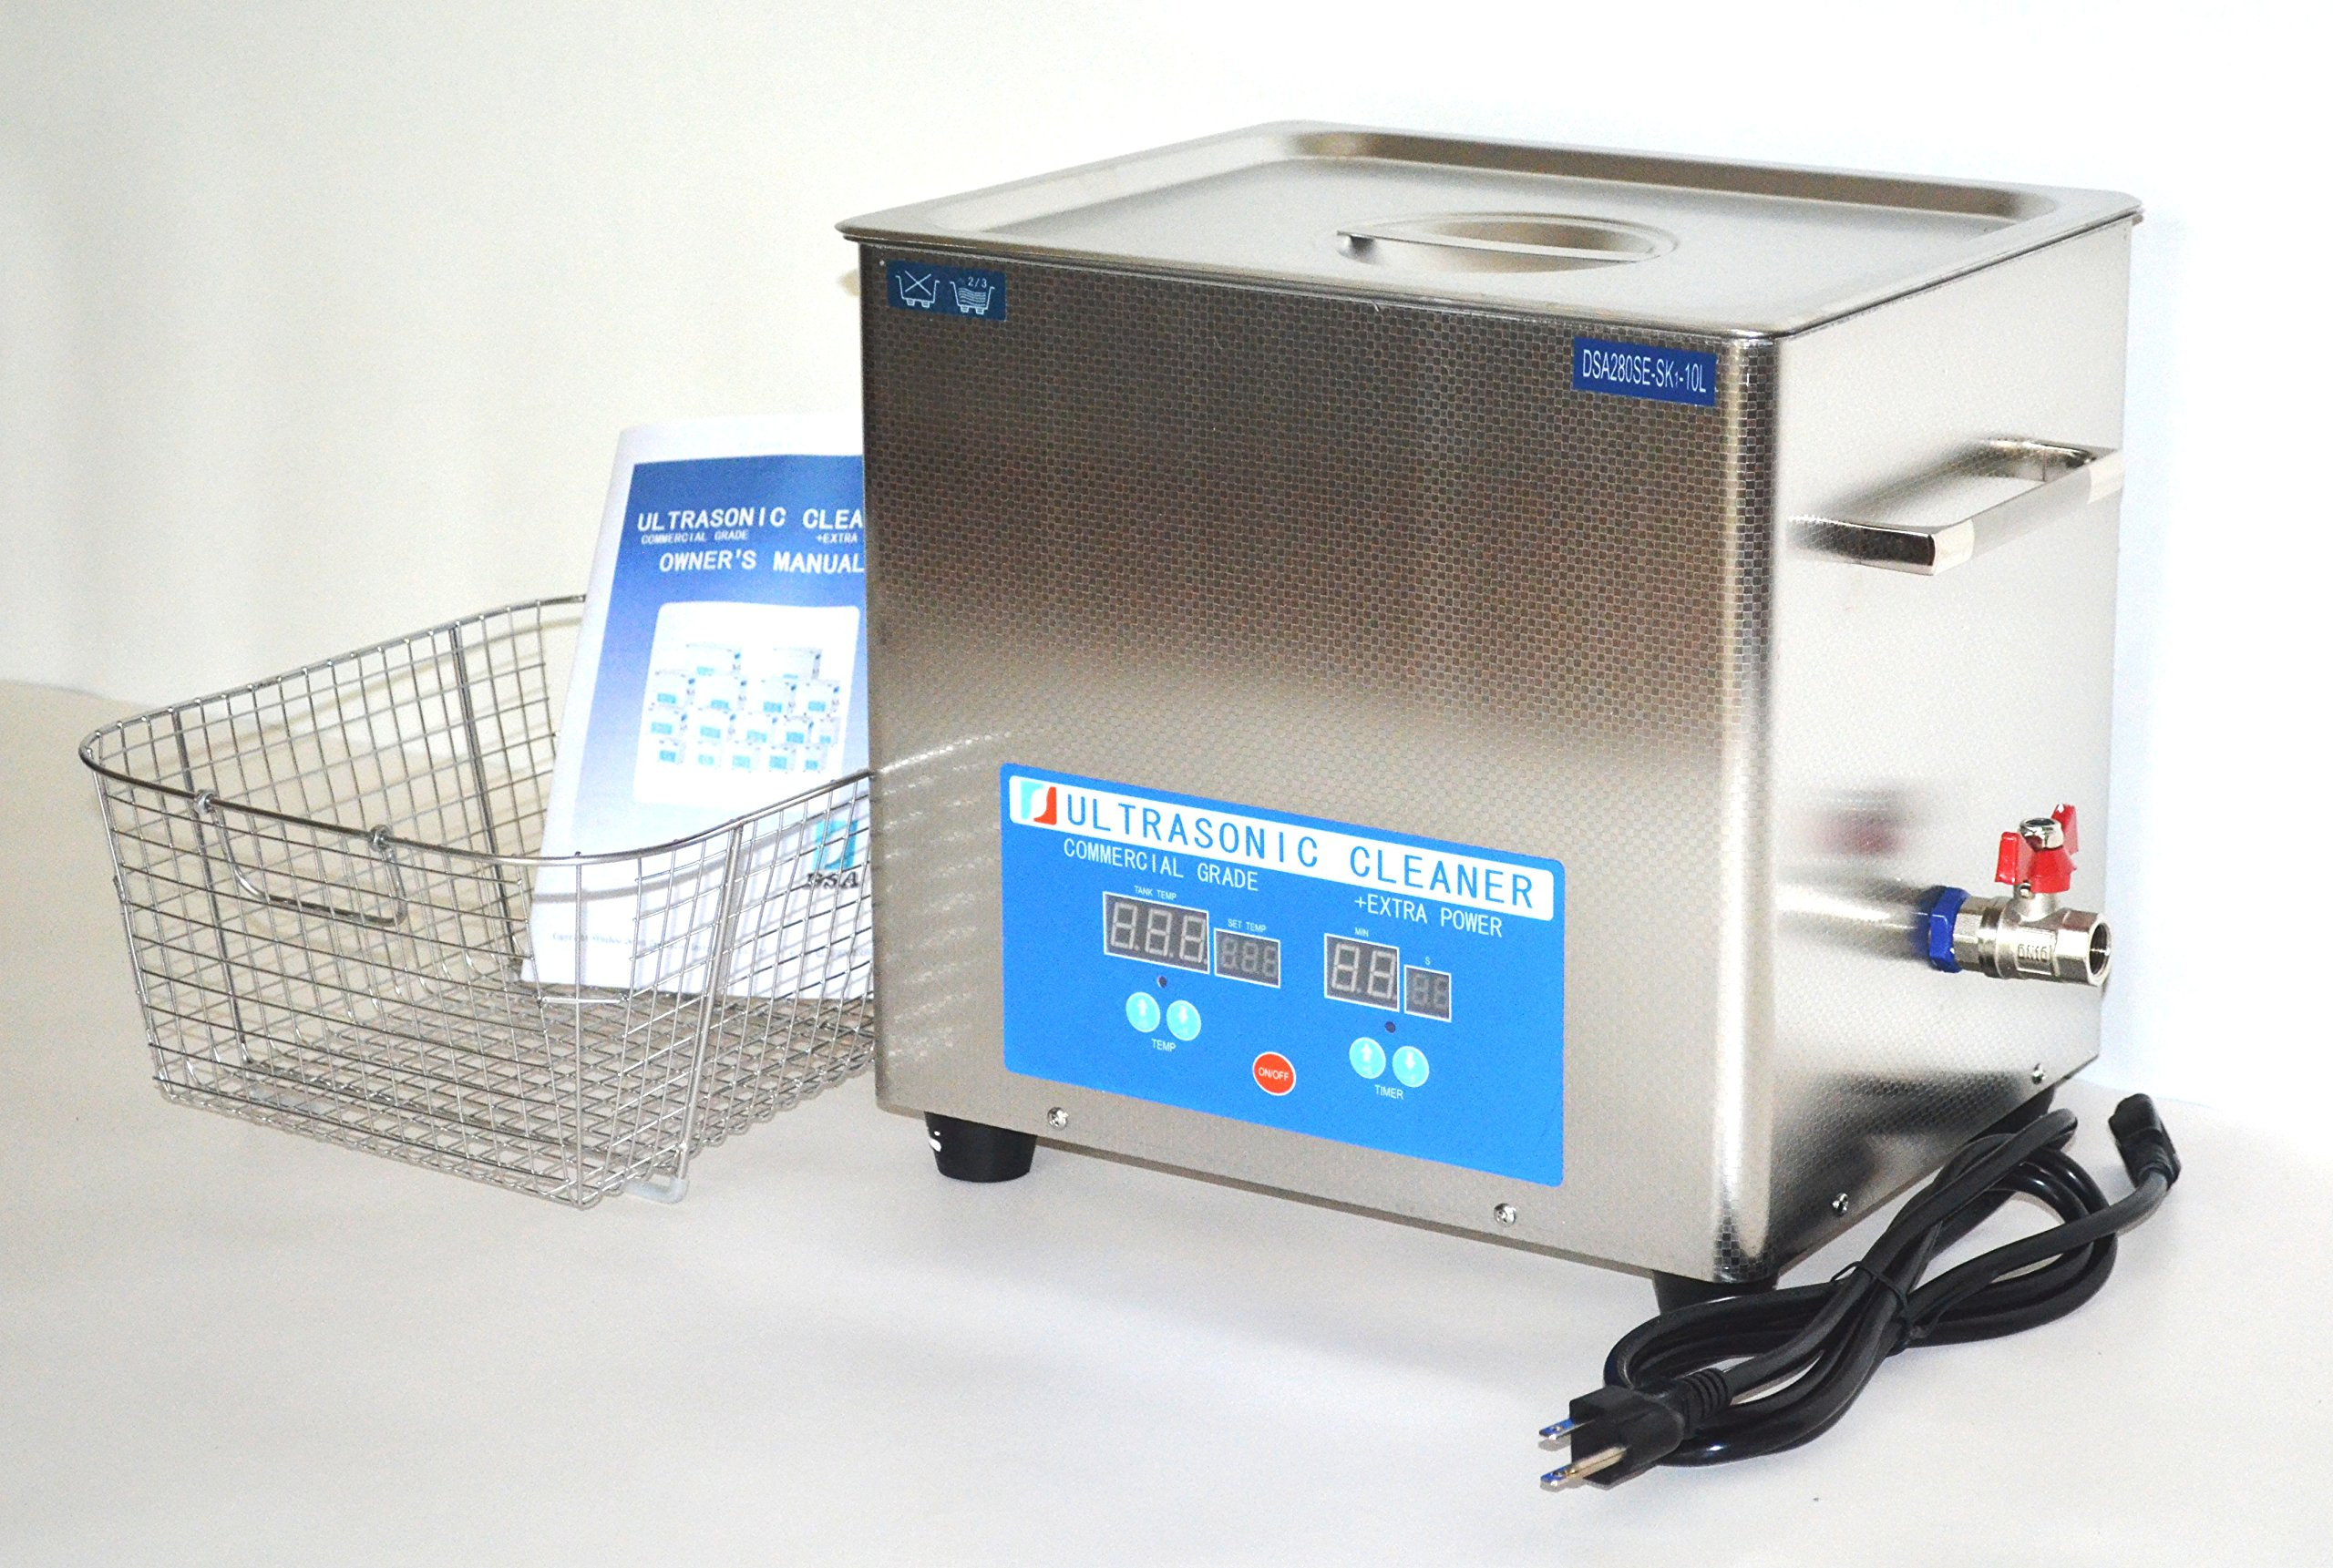 DSA280SE-SK1 40KHz 10L 880W HEATED INDUSTRIAL ULTRASONIC PARTS CLEANER WASHER